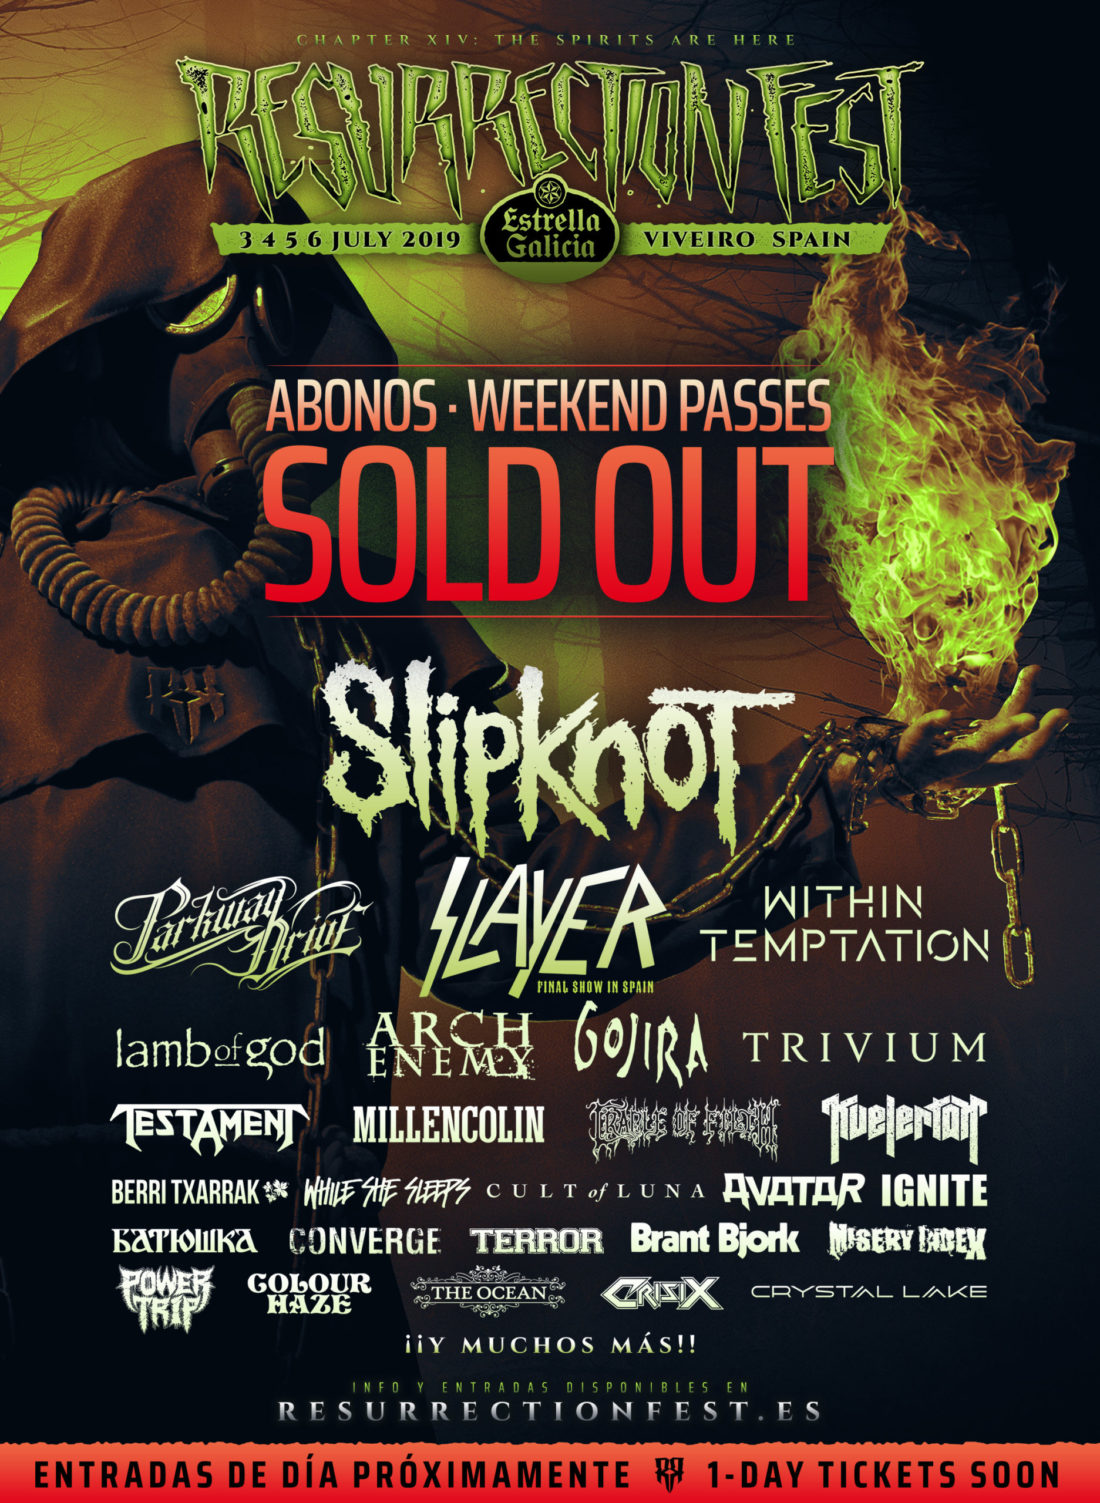 Resurrection Fest Estrella Galicia 2019: all the weekend passes are now sold out, thank you all!